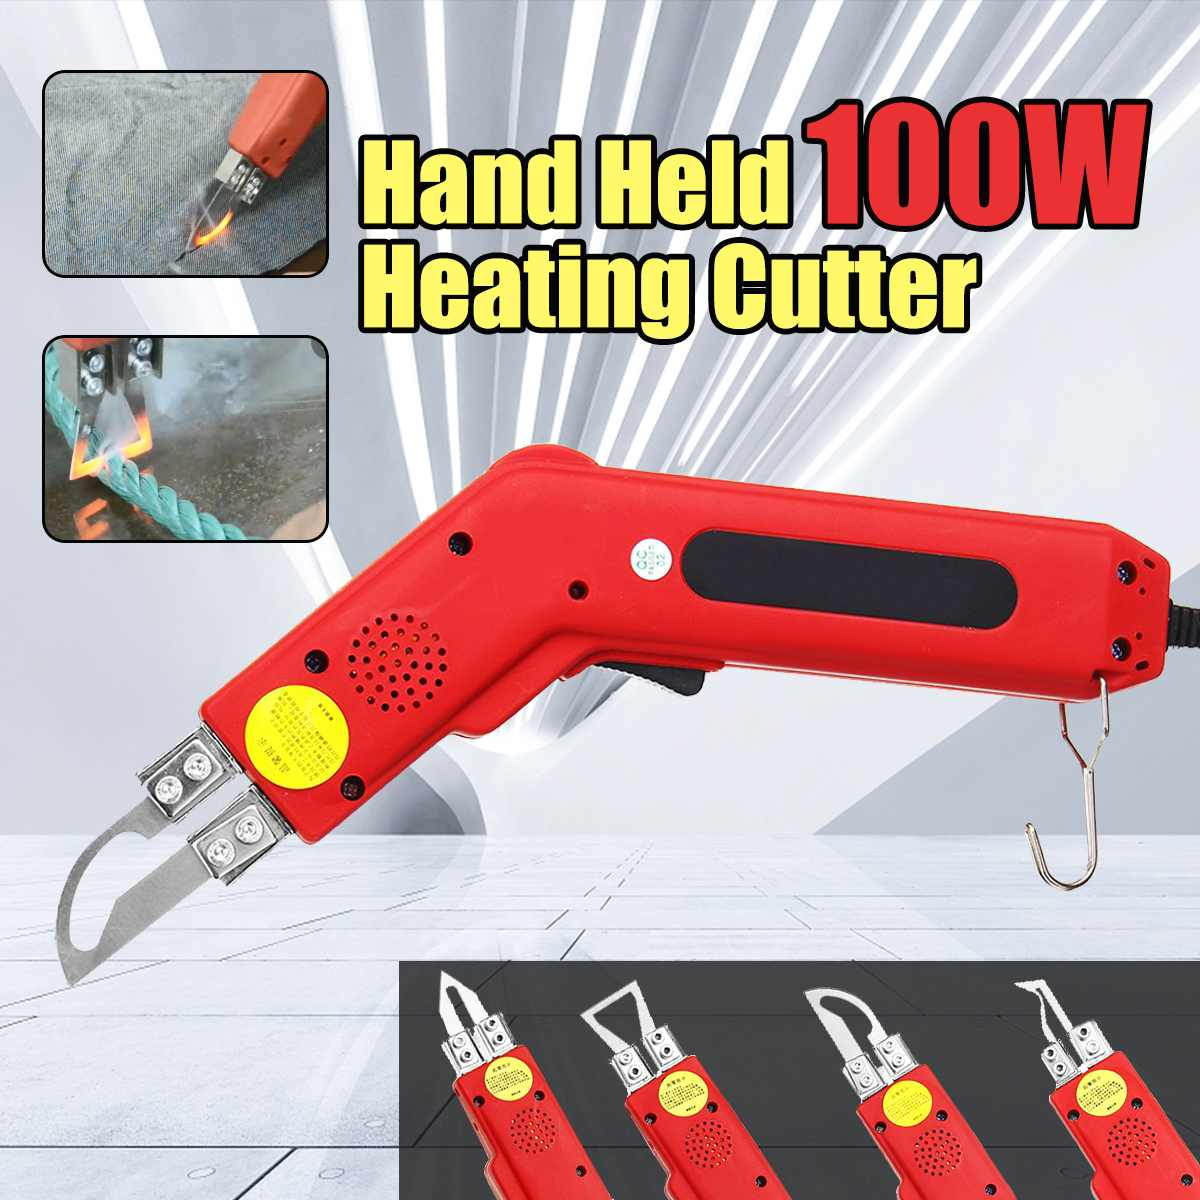 100W Hand Hold Heating Knife Cutter Hot Cutter Fabric Rope Electric Cutting Tools Hot Cutter New Arrival Knives     - title=